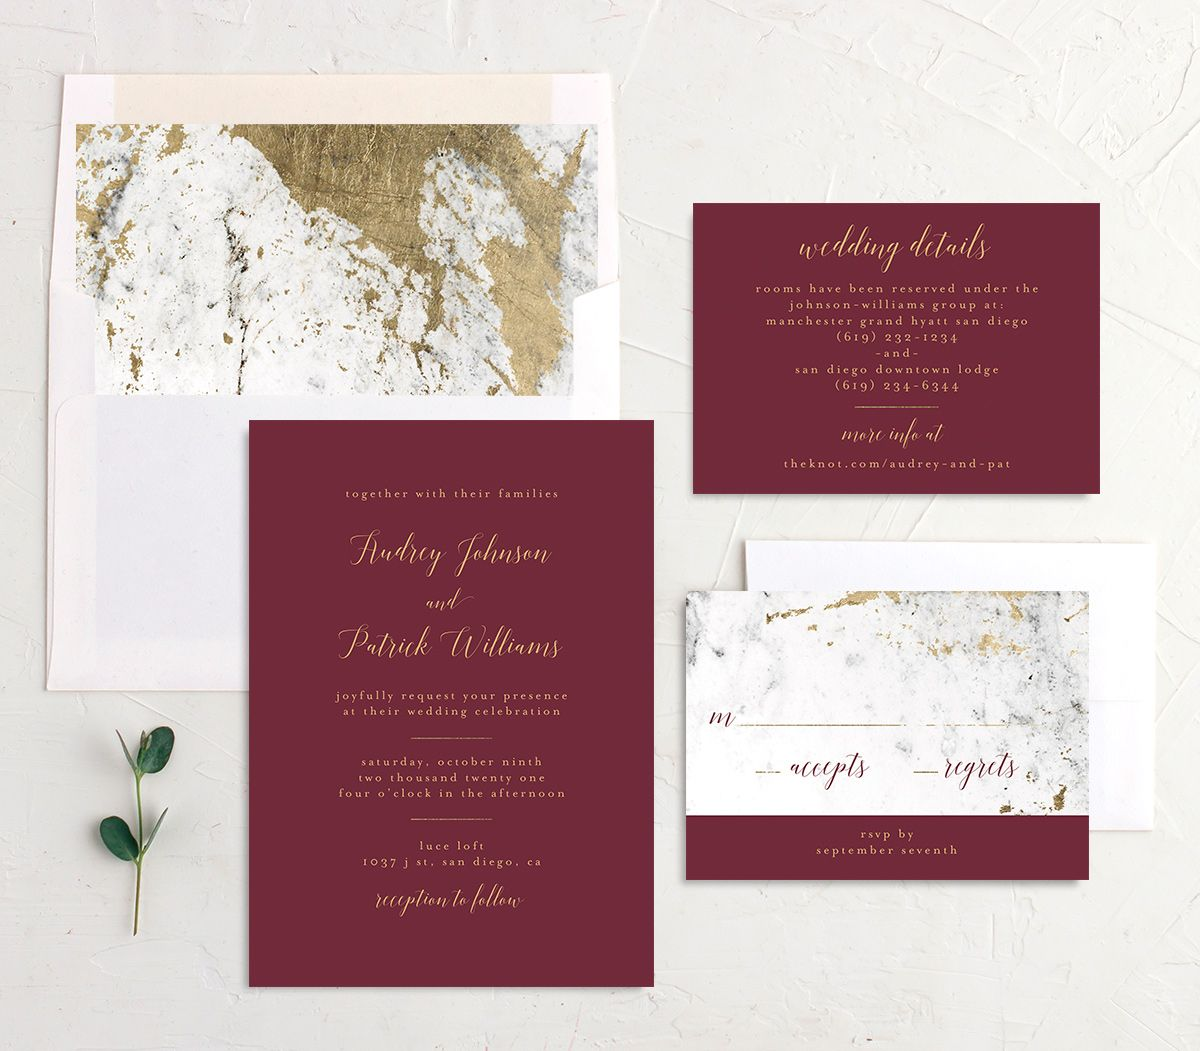 Marble and Gold Wedding Invitation Suite shown in red